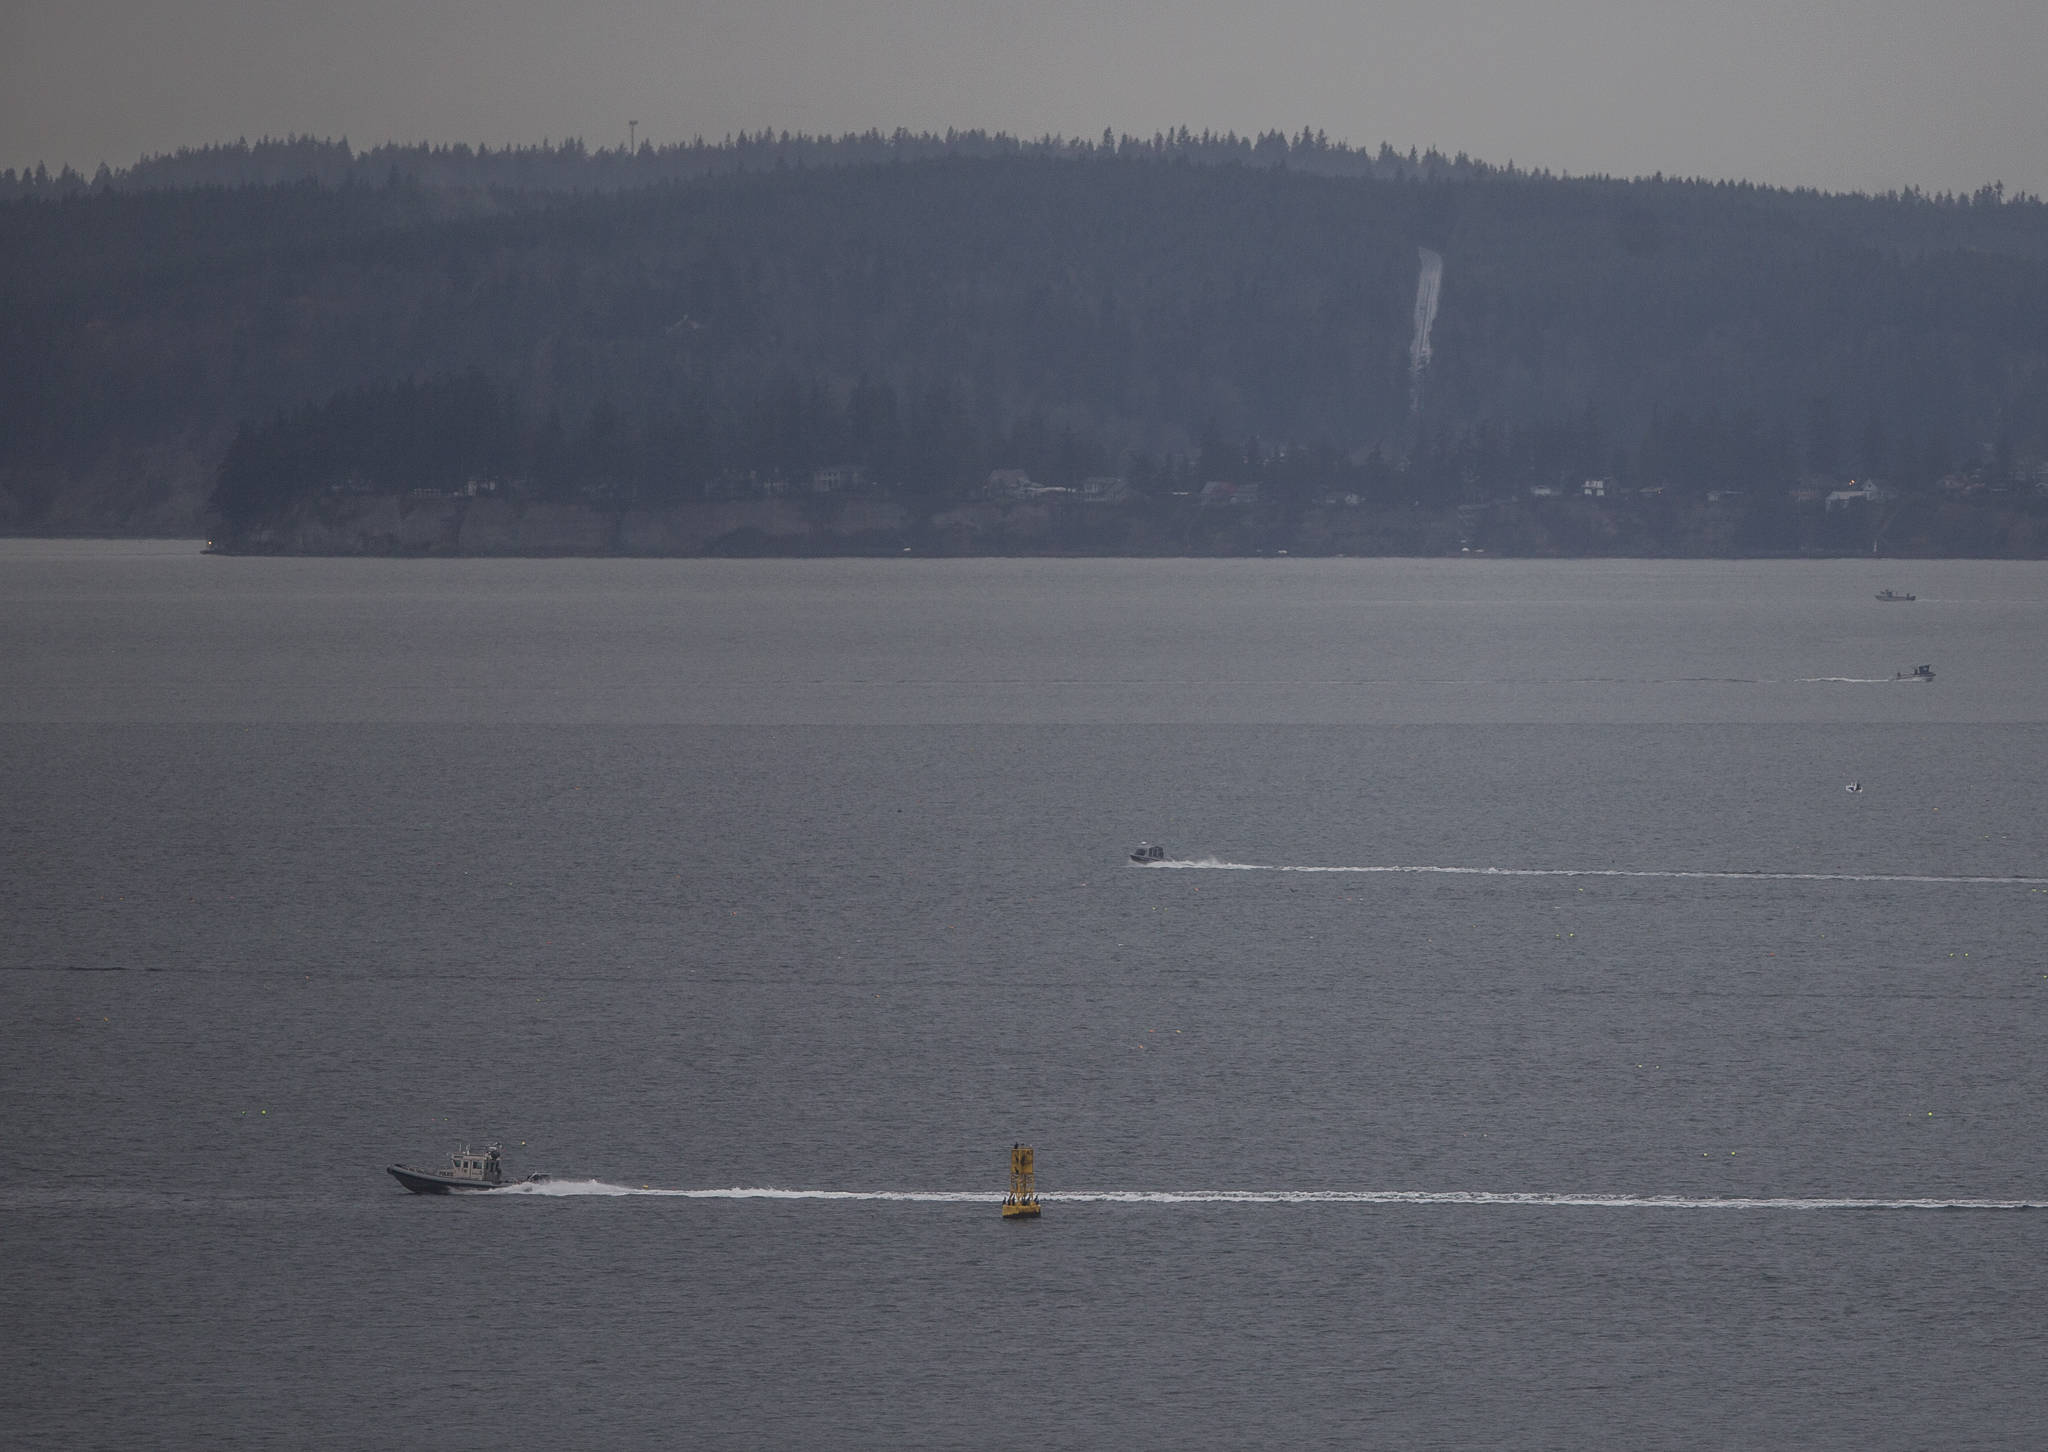 A patrol boat heads across Possession Sound while the search for a Tulalip police officer missing from a capsized Tulalip fisheries boat continues Wednesday near Everett. (Olivia Vanni / The Herald)